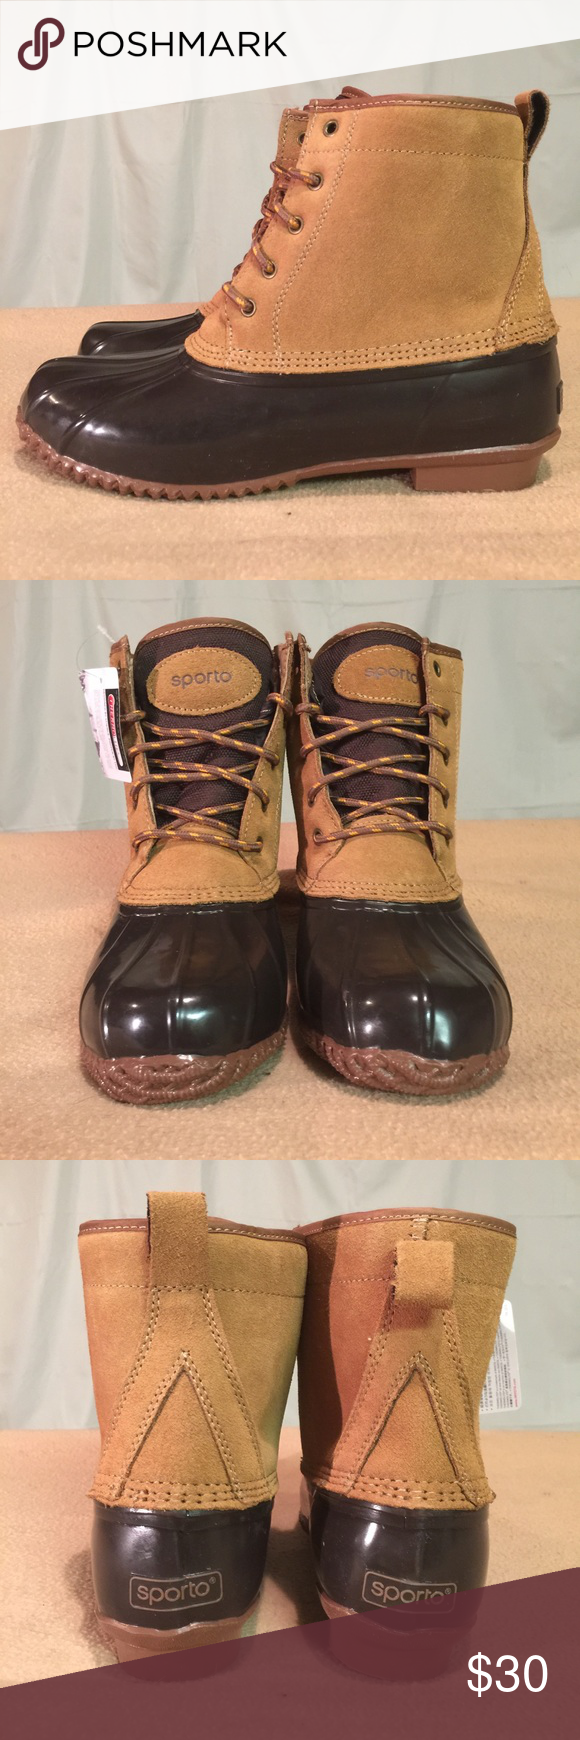 New Sporto Brown Leather & Waterproof Duck Boots These shoes are Brand New/Never Worn and are in PERFECT CONDITION. Sporto Shoes Ankle Boots & Booties